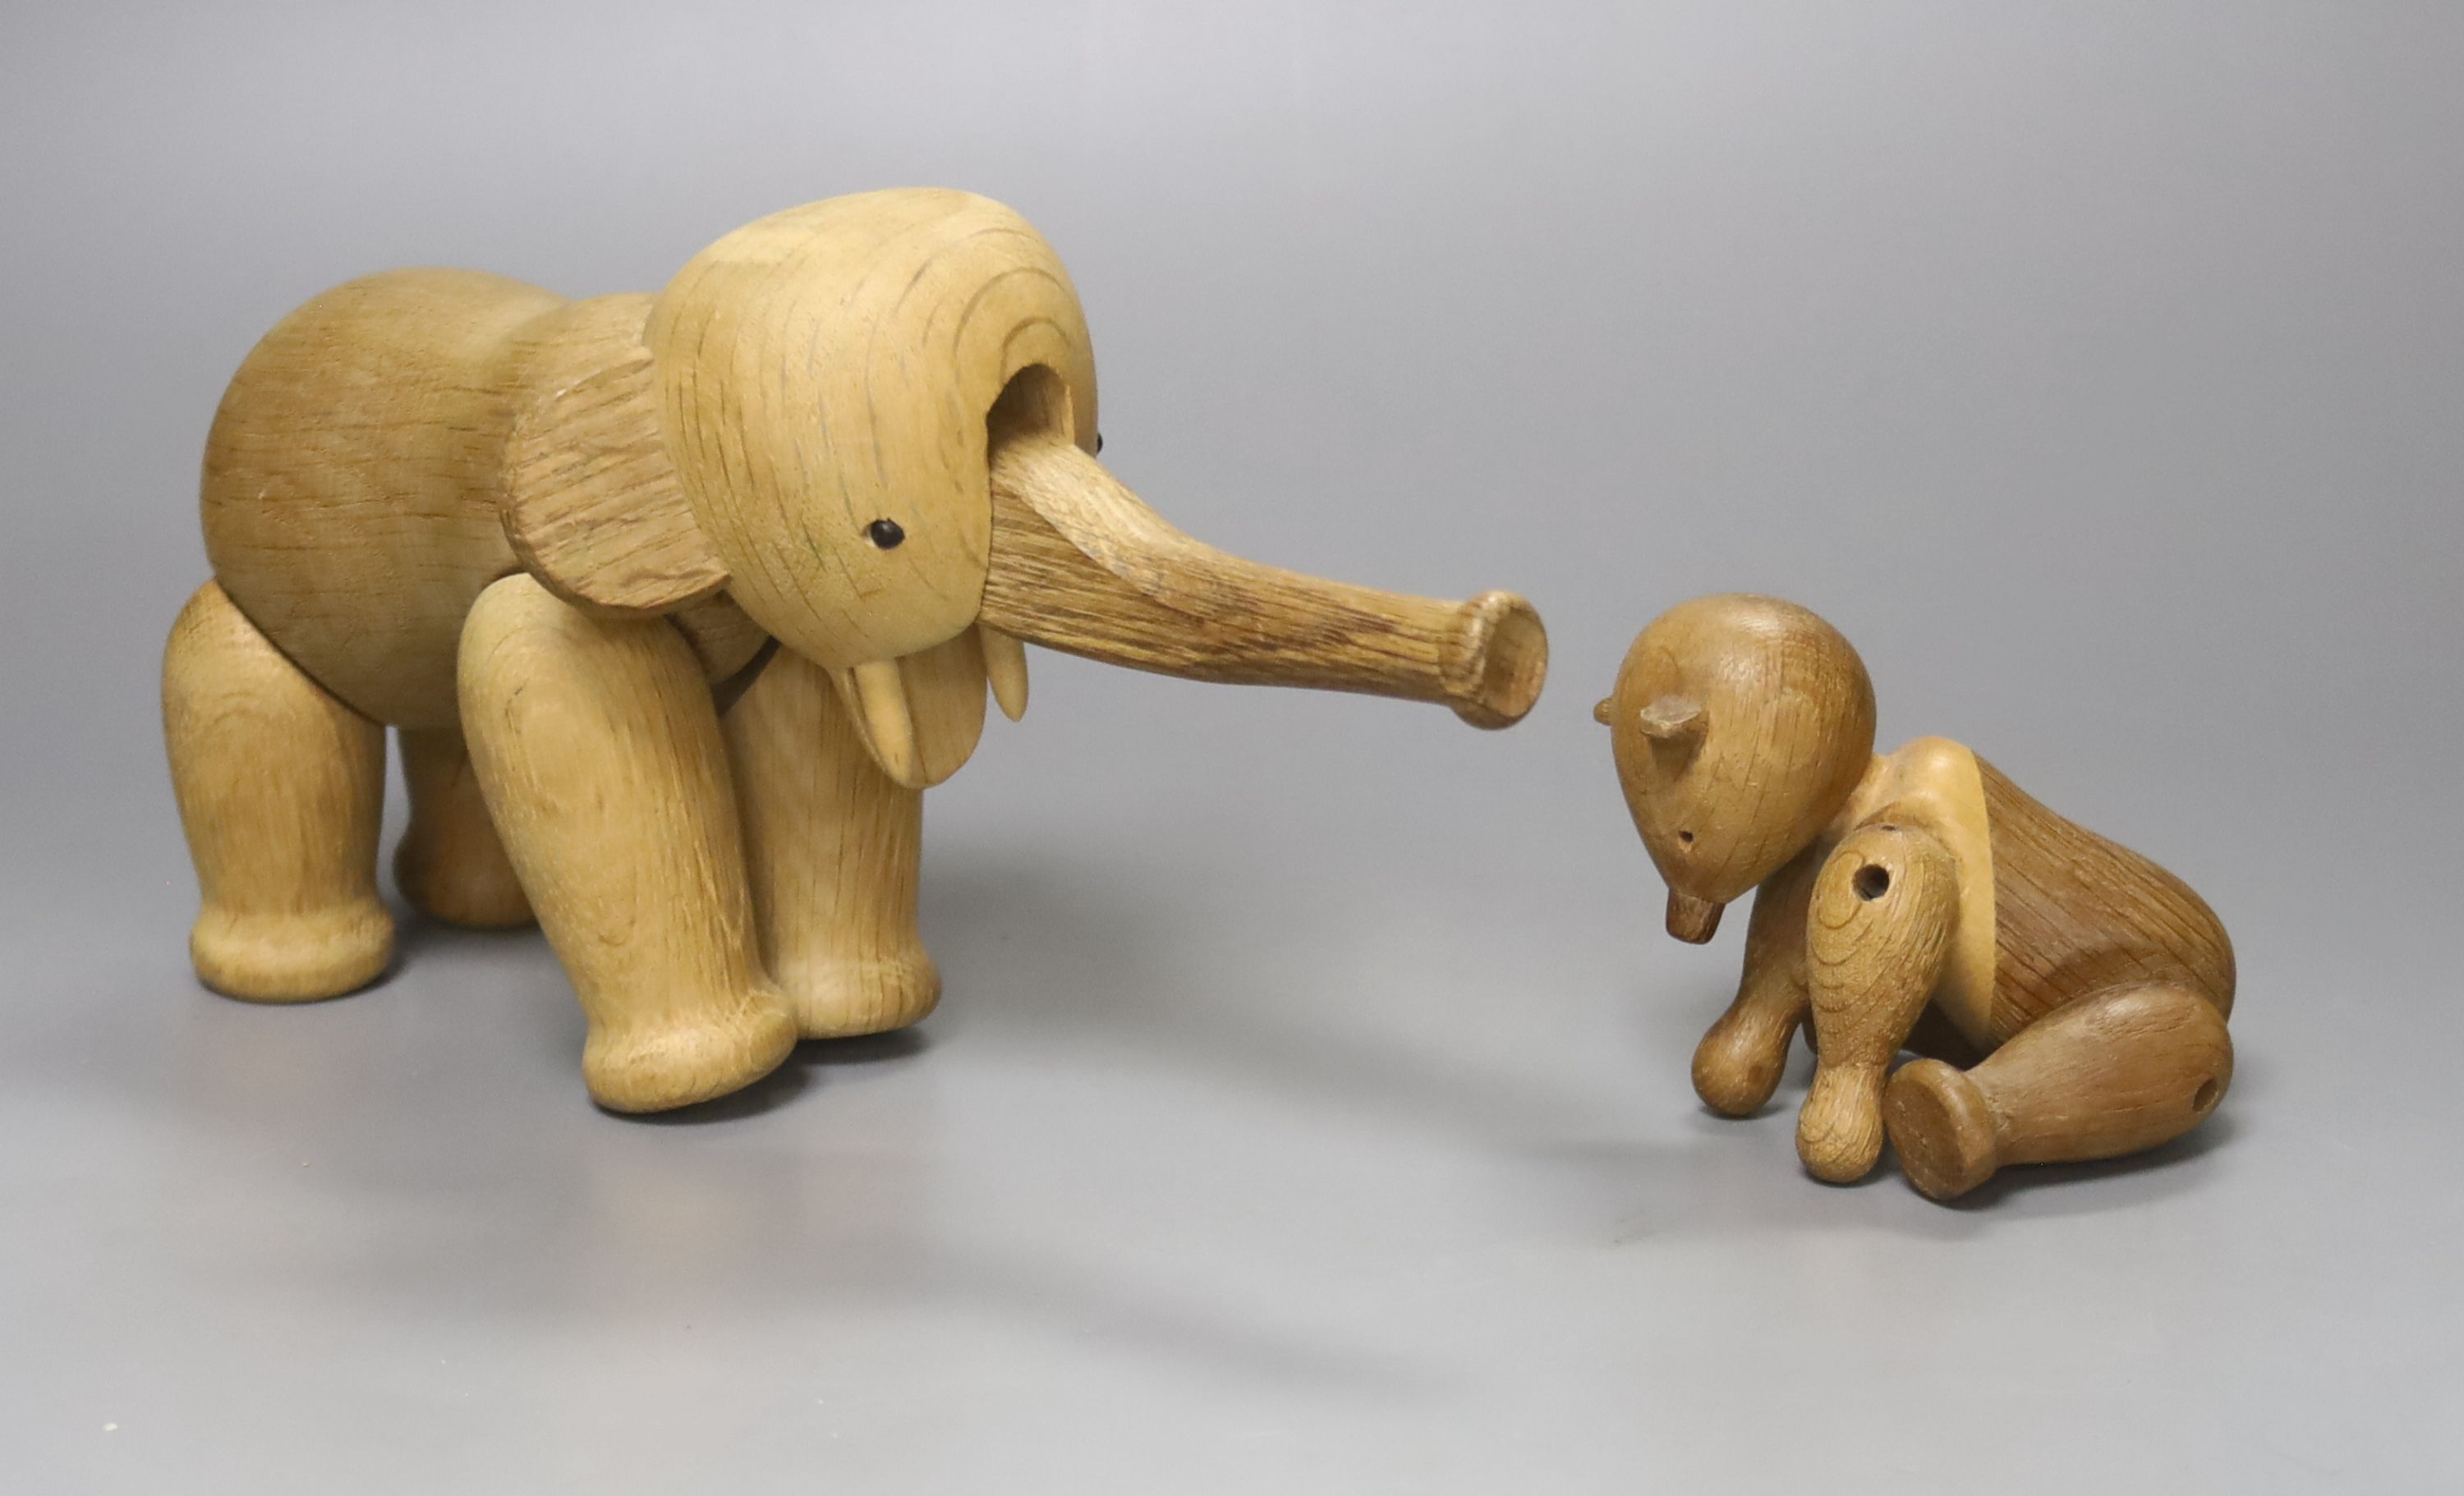 Two Danish carved wooden toys by Kay Bogesen, a standing elephant, 22cm length 14cm high and a